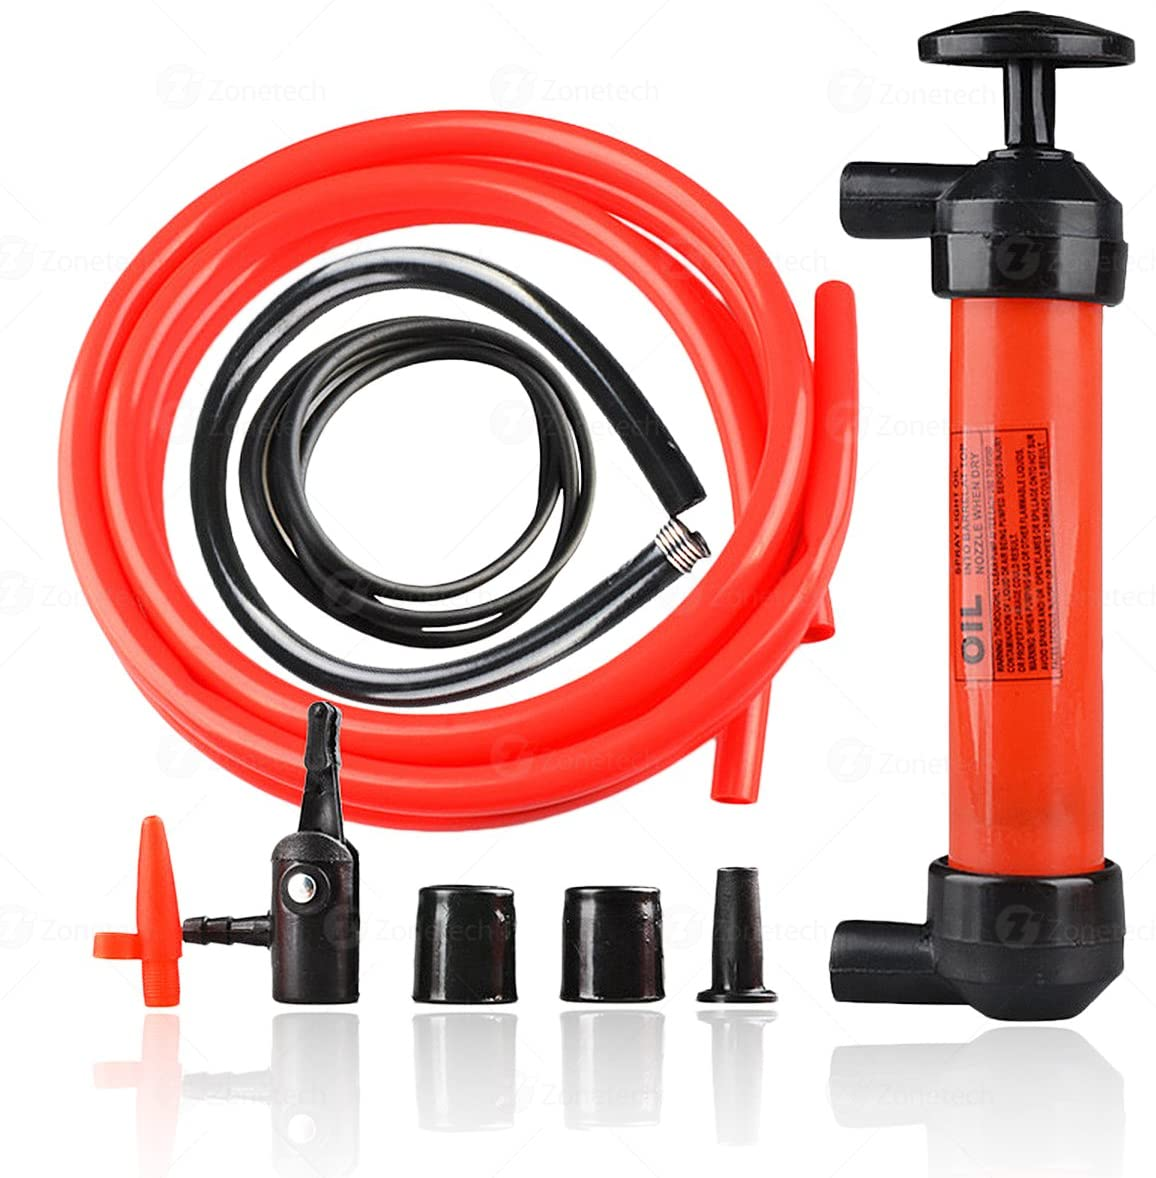 Zone Tech Siphon Air Pump-Hand Gas Liquid Air Pump- Fluid Fuel Oil Gasoline Water-Travel Emergency Manual Vehicle Car Tool